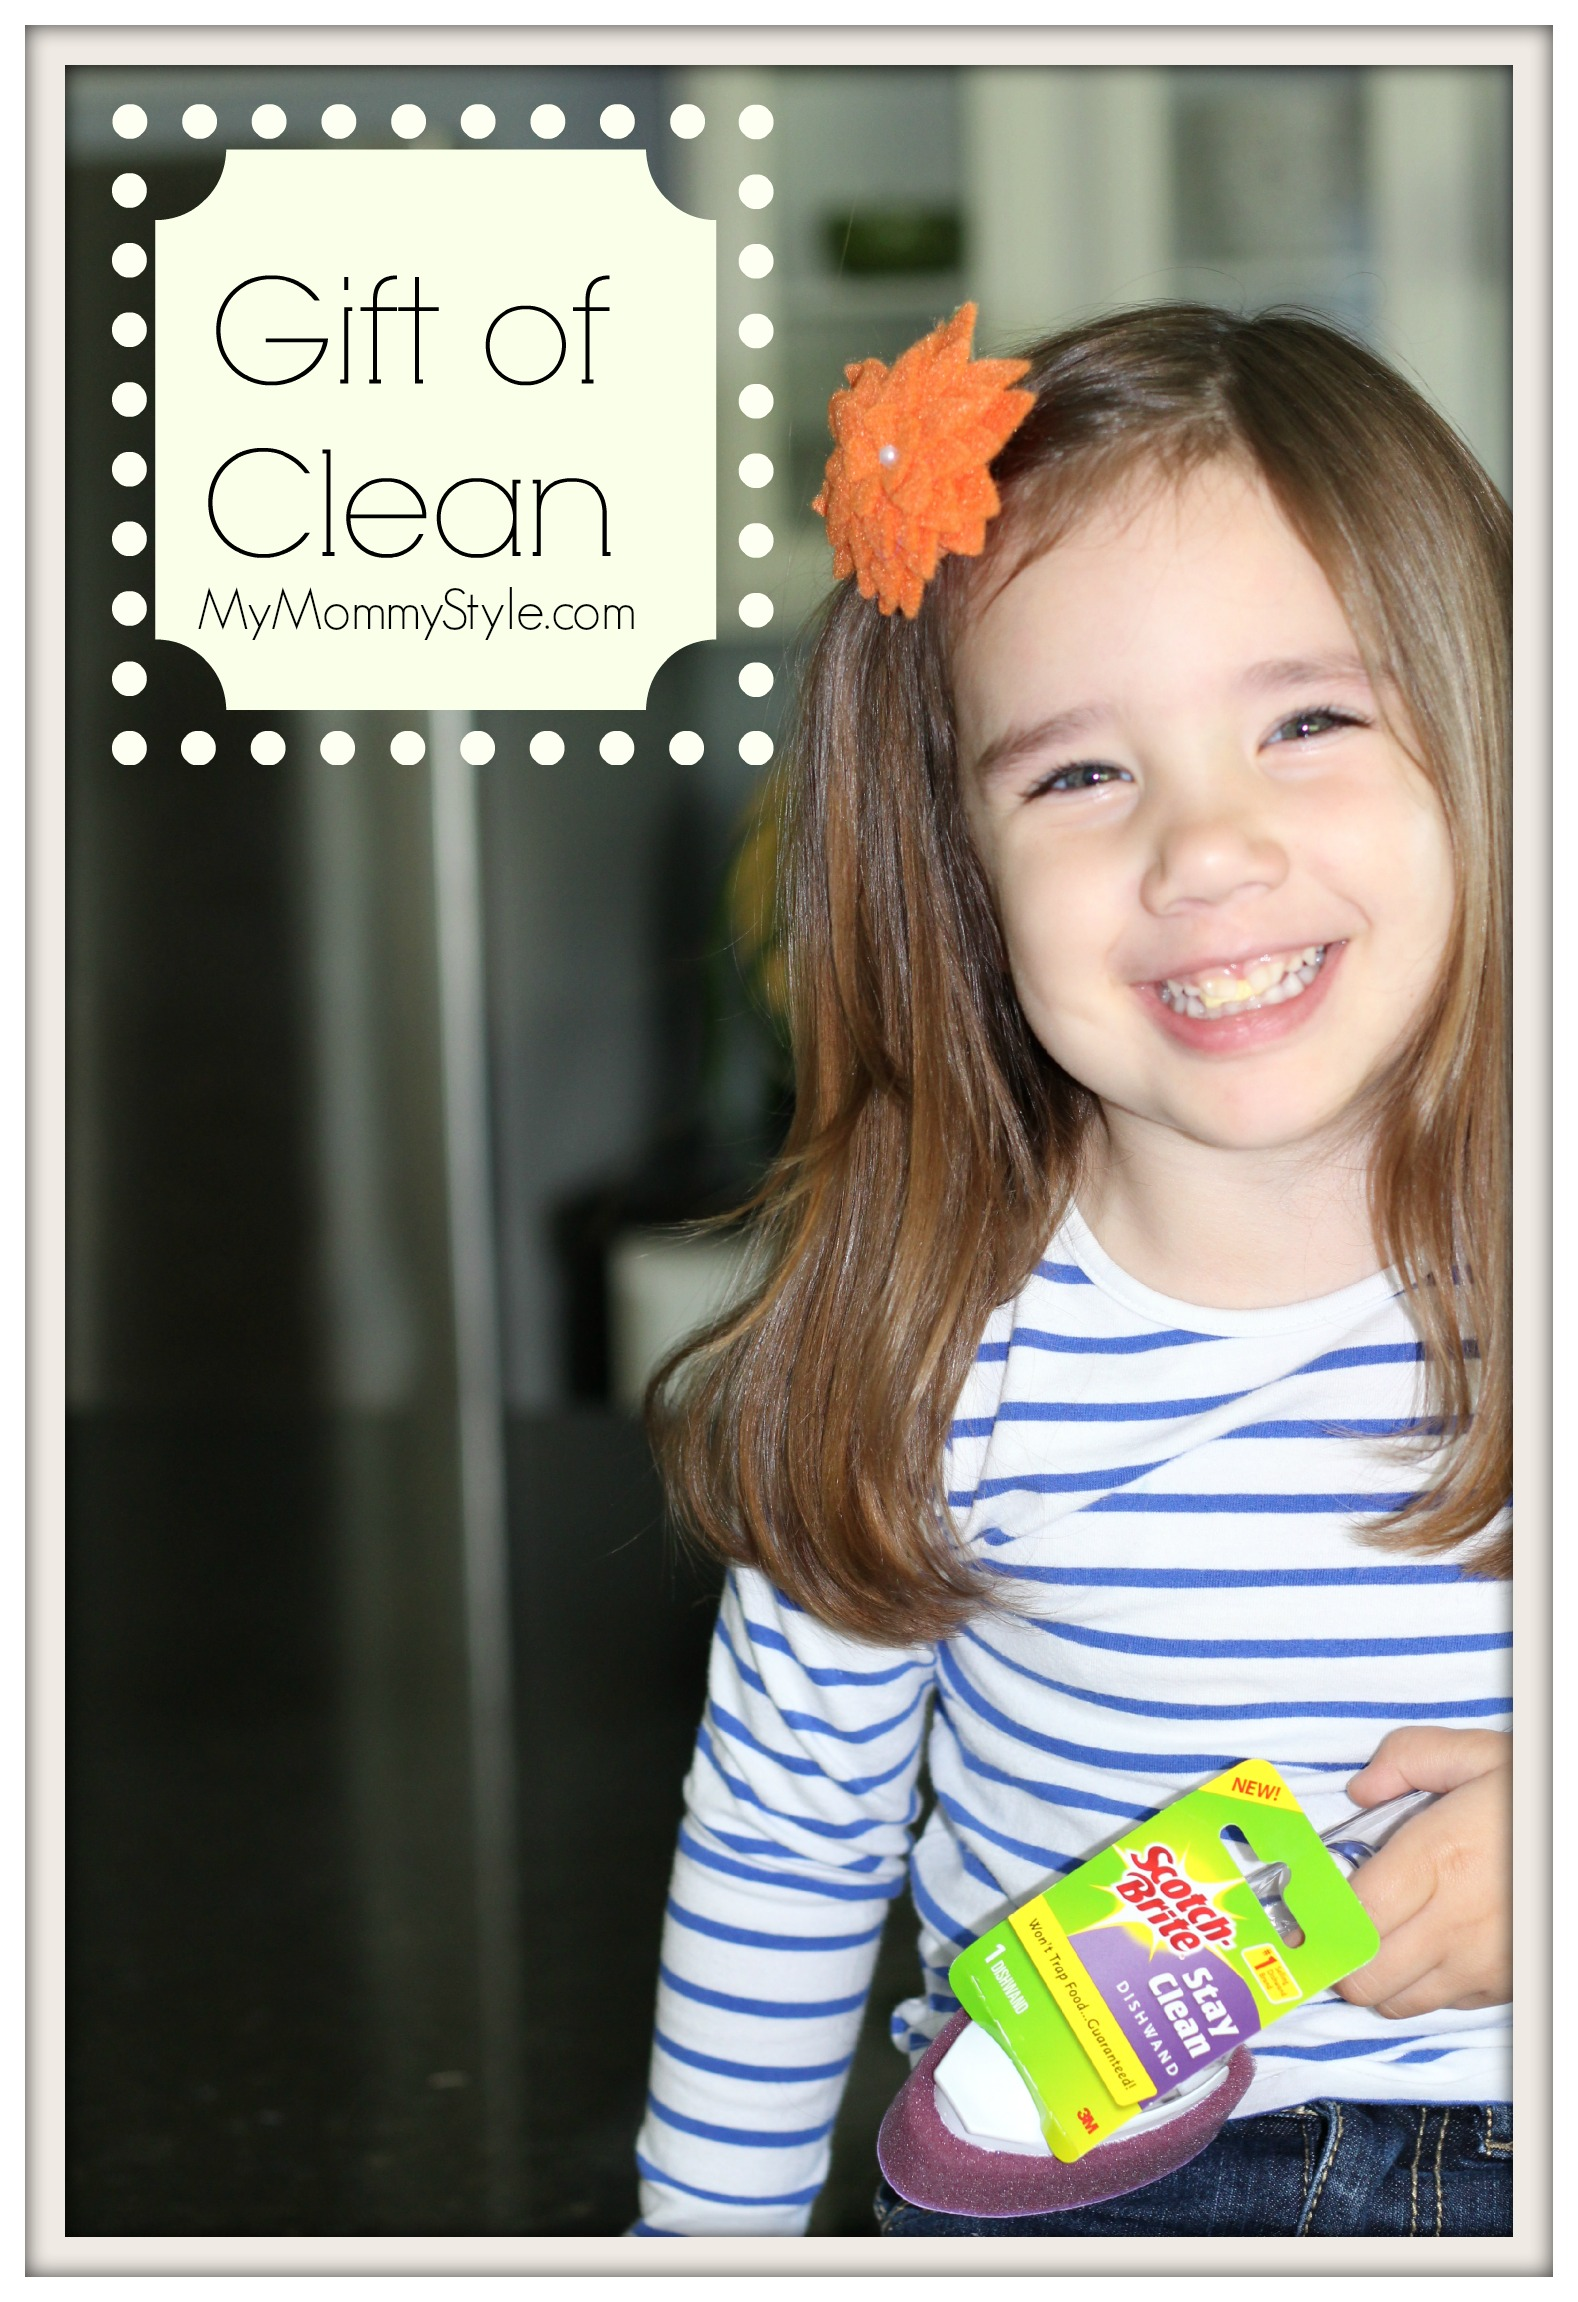 gift of clean, mothersday, scotchbrite, mymommystyle.com